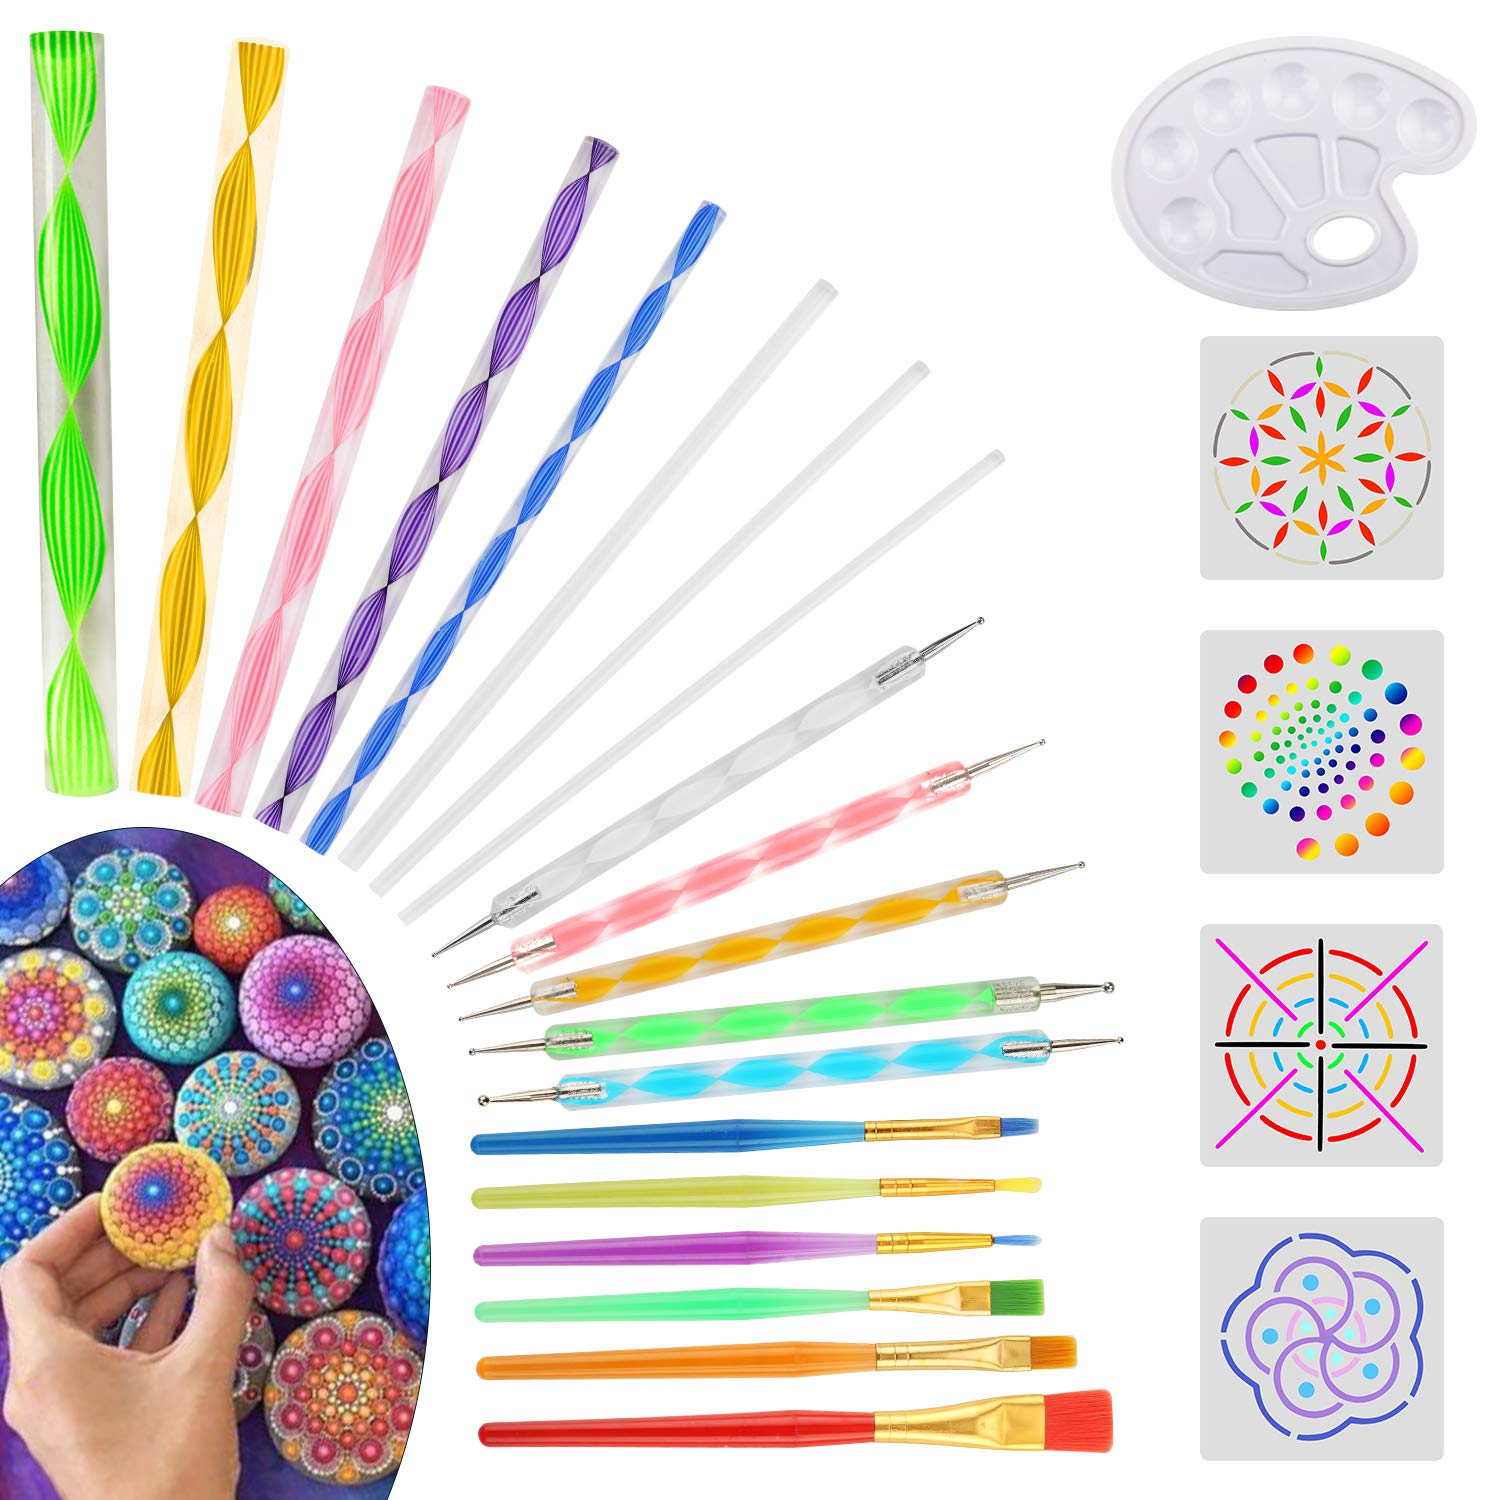 25 Pieces Mandala Dotting Tools for Painting Rocks, Coloring, Drawing and Drafting (1H-U9KG-DQ6L)